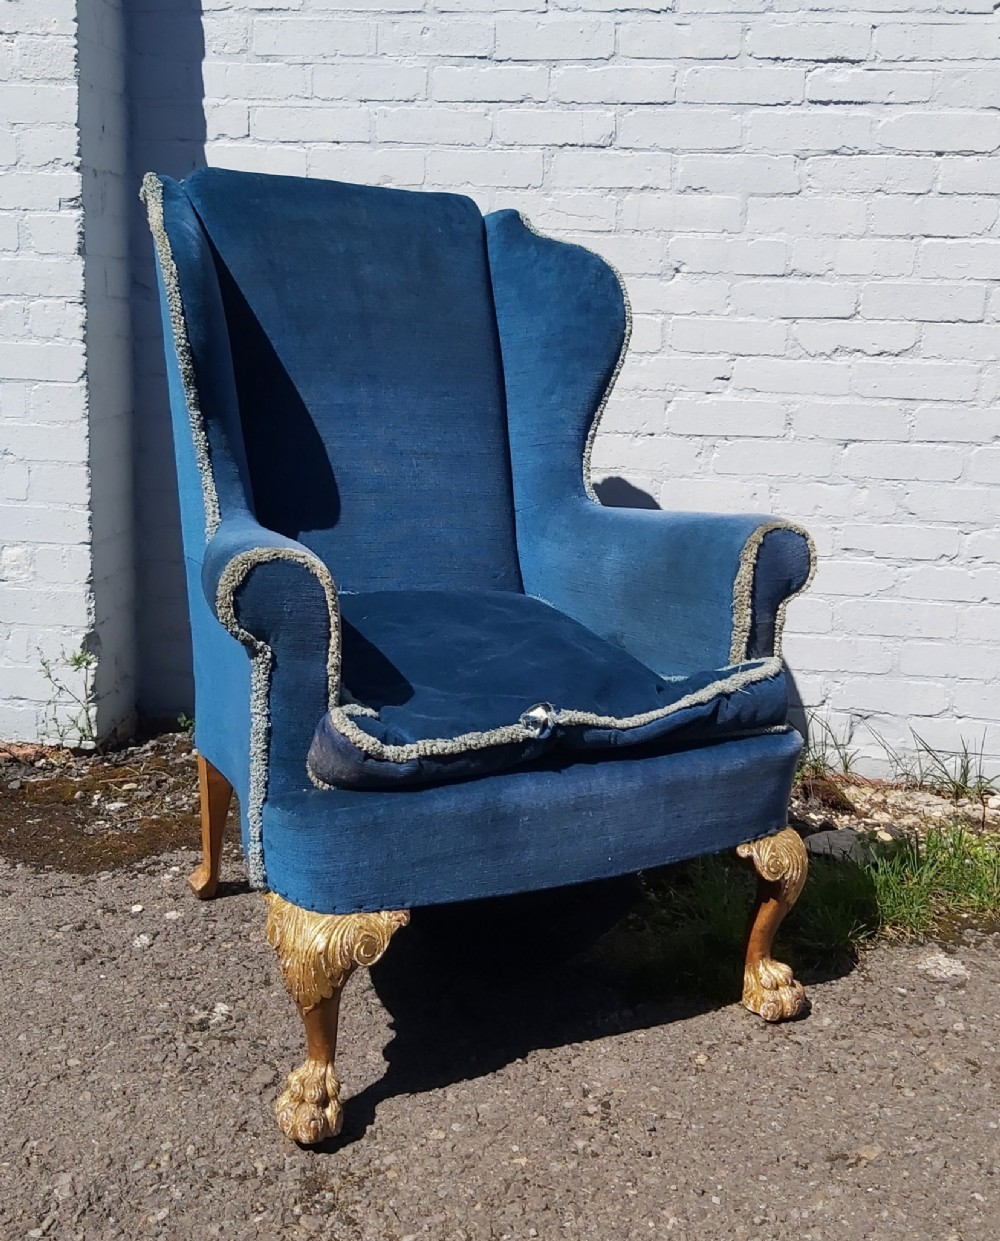 19th century walnut and gilded cabriole leg wing armchair